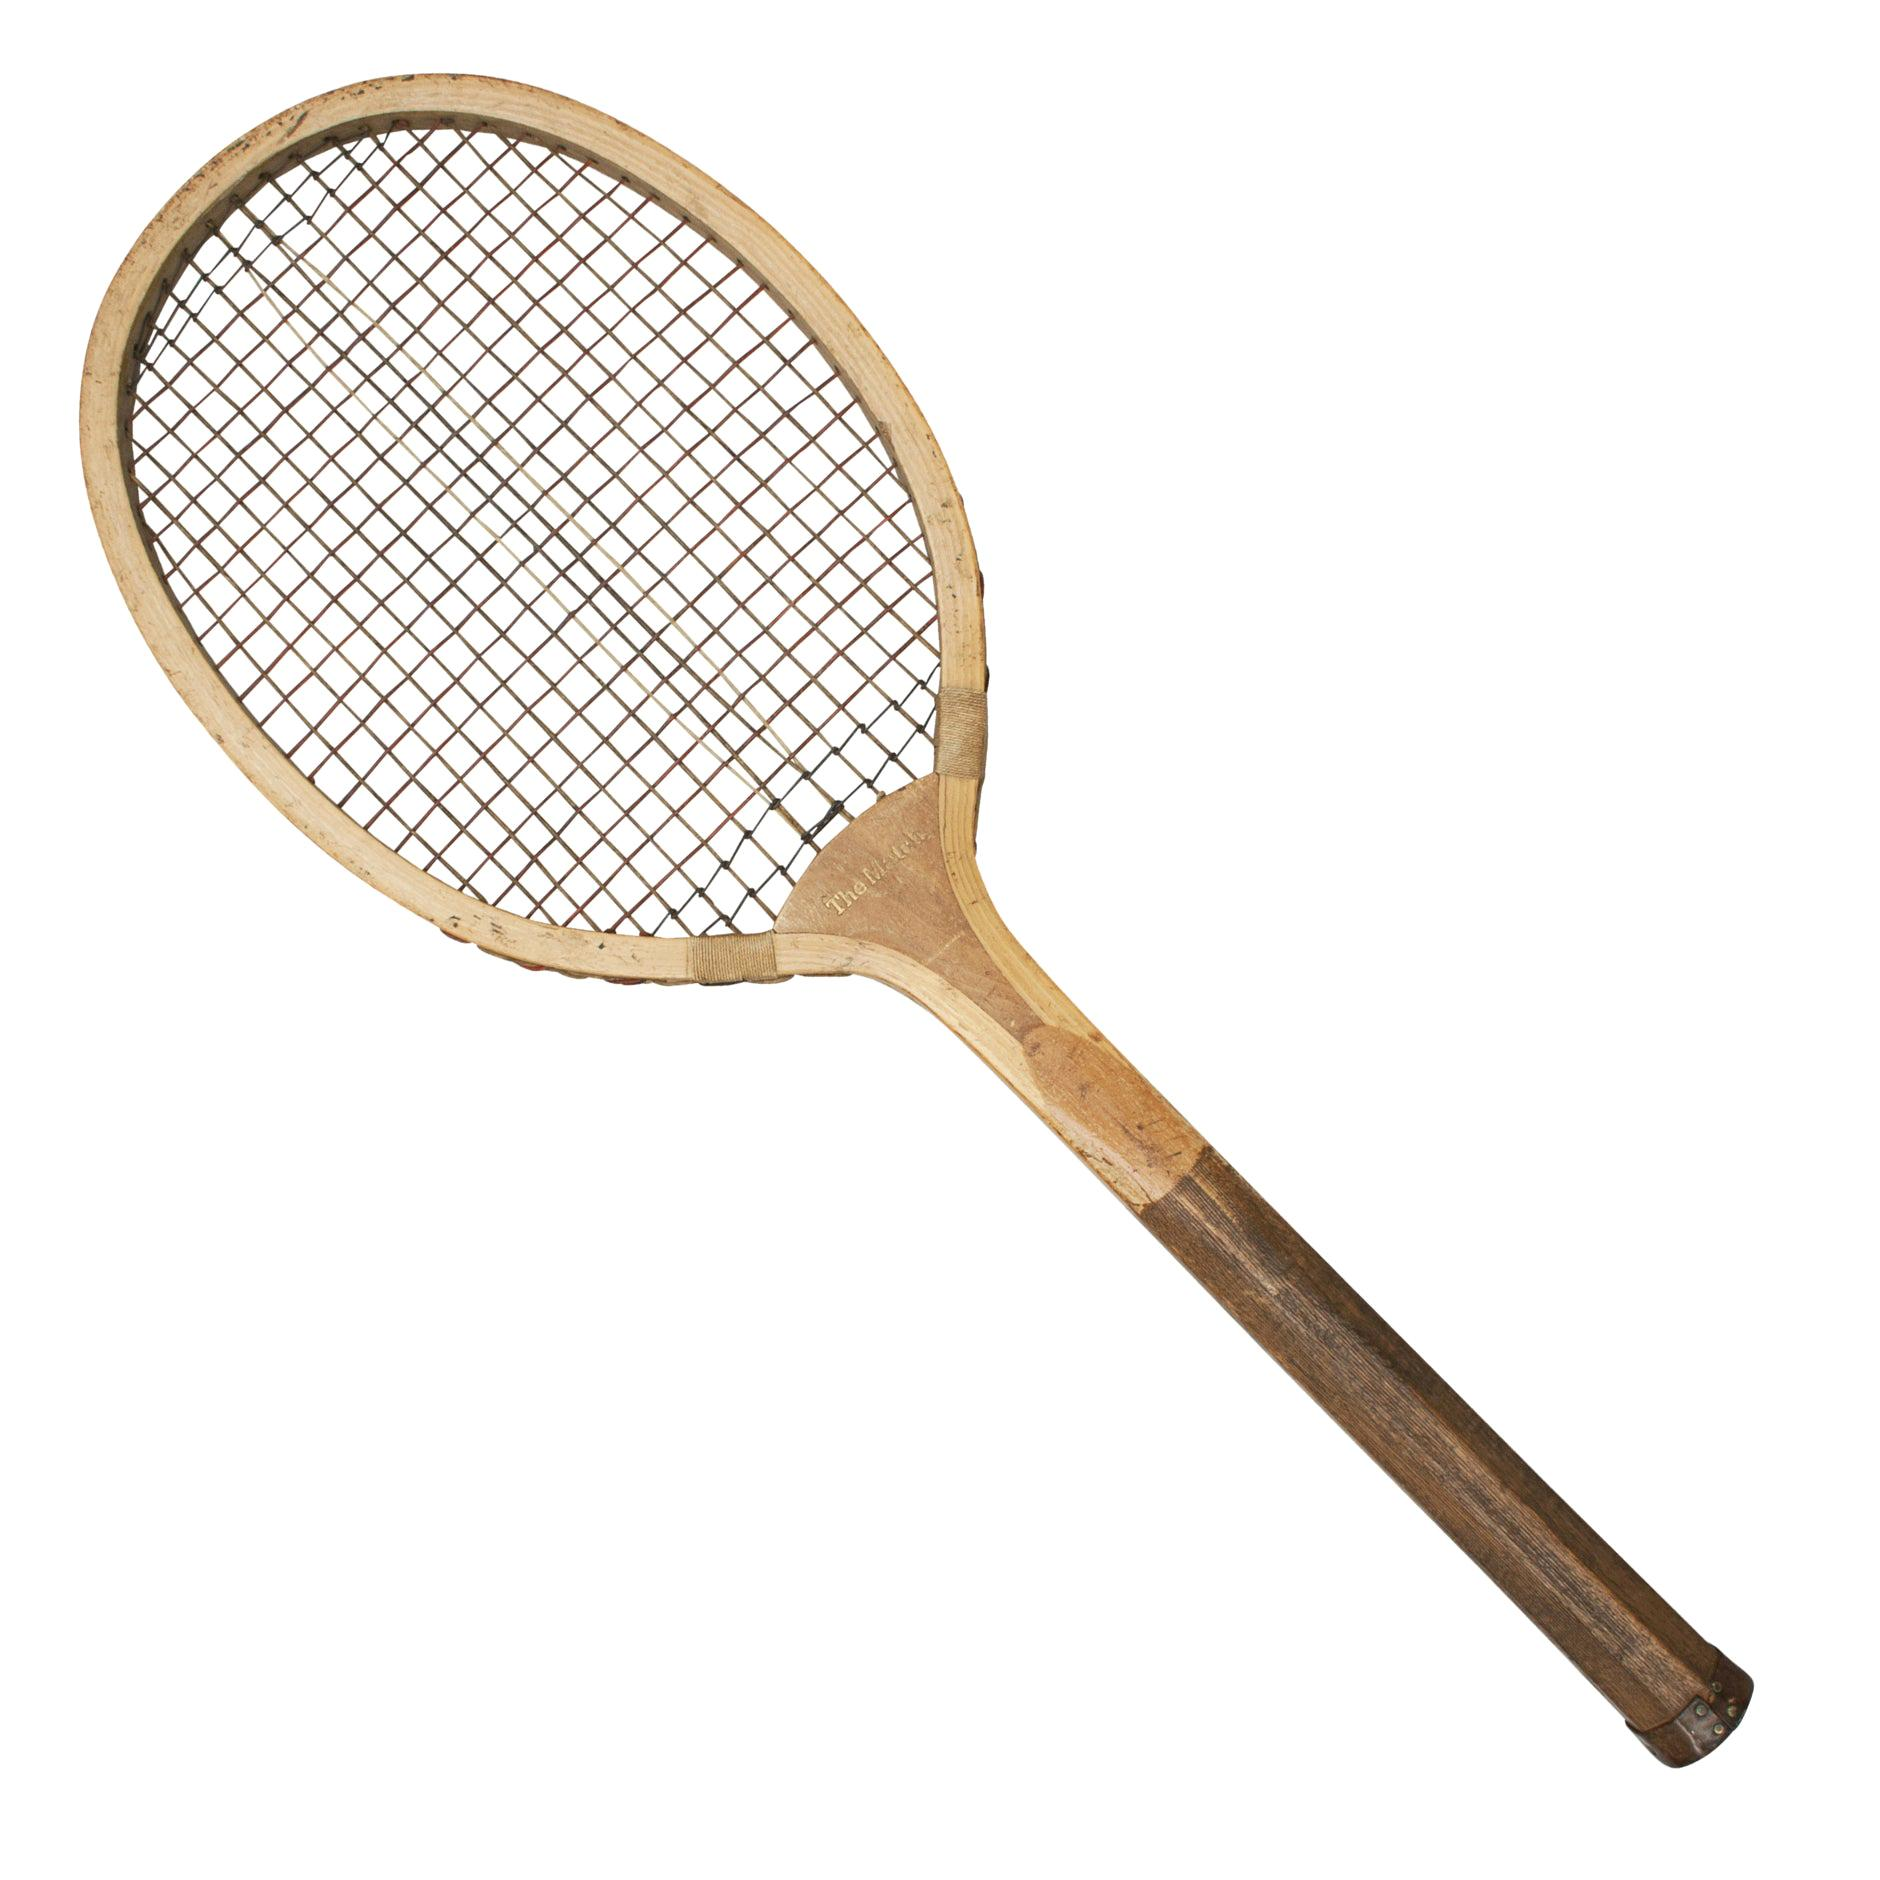 Vintage Lawn Tennis Racket, the Match